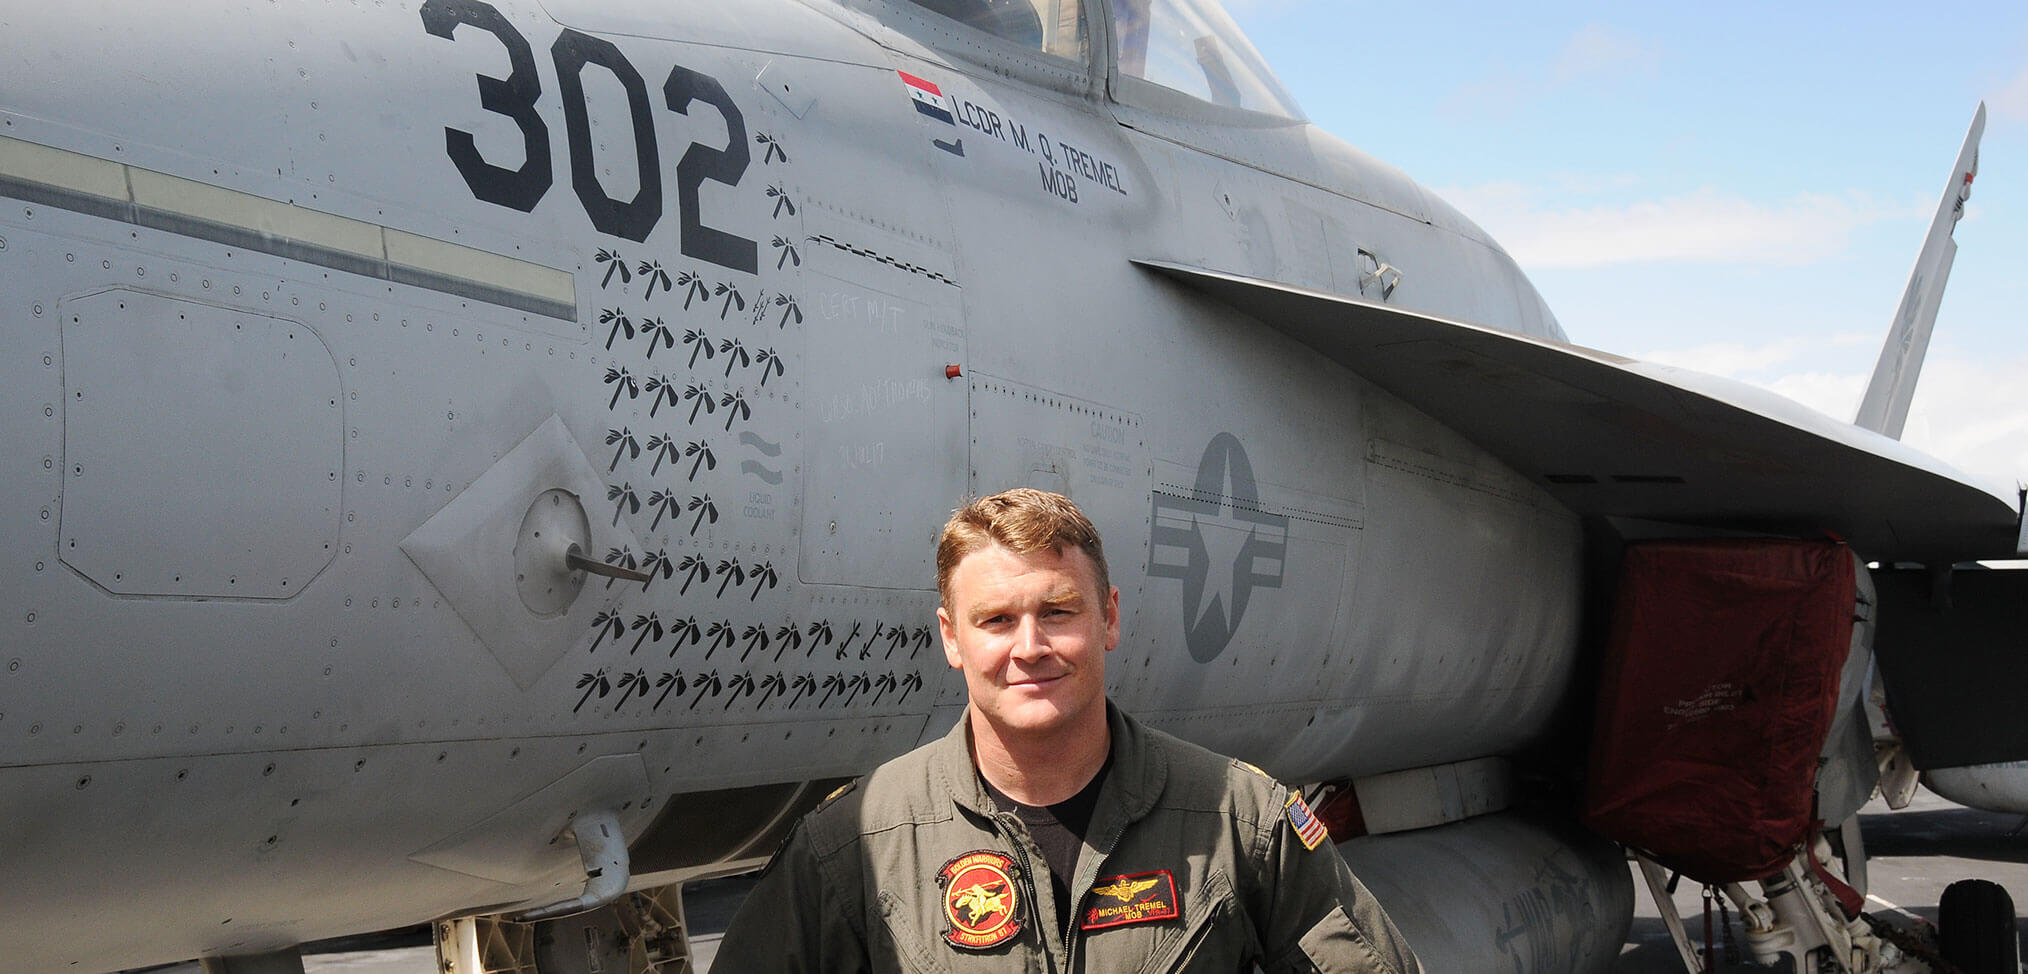 Up close with a US super carrier and the pilots fresh from combat operations